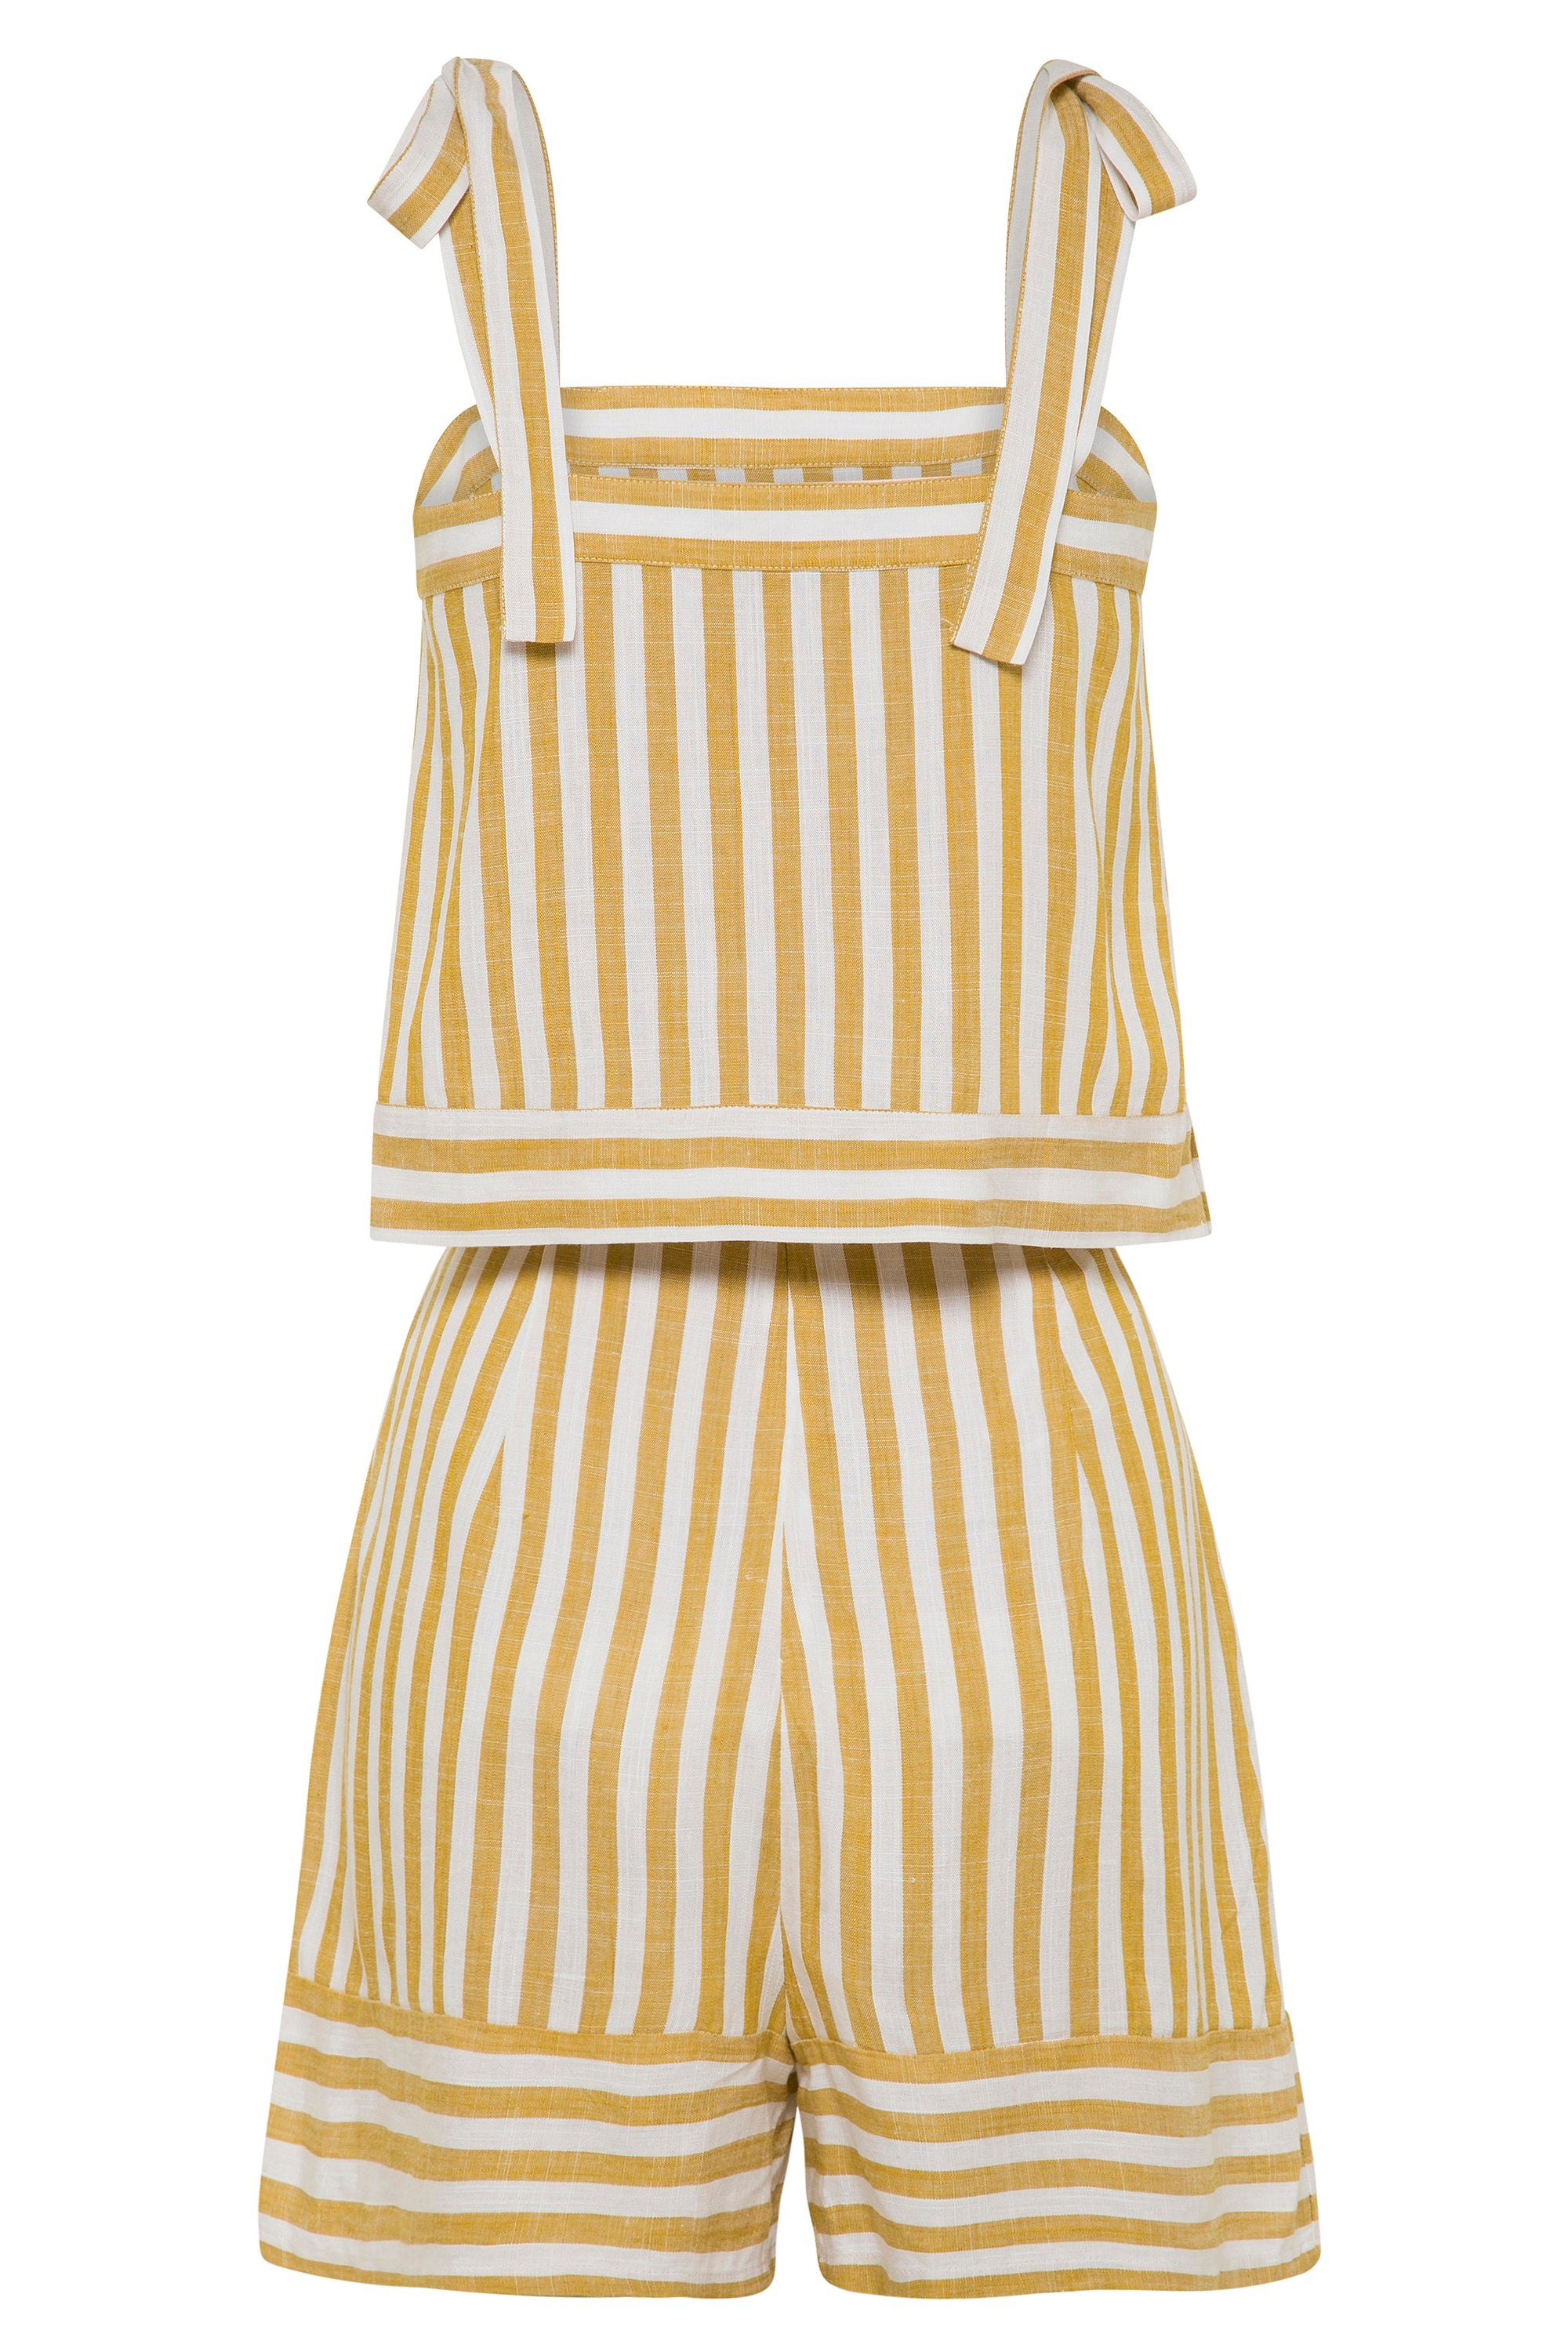 Dixie Playsuit In Mustard Stripe